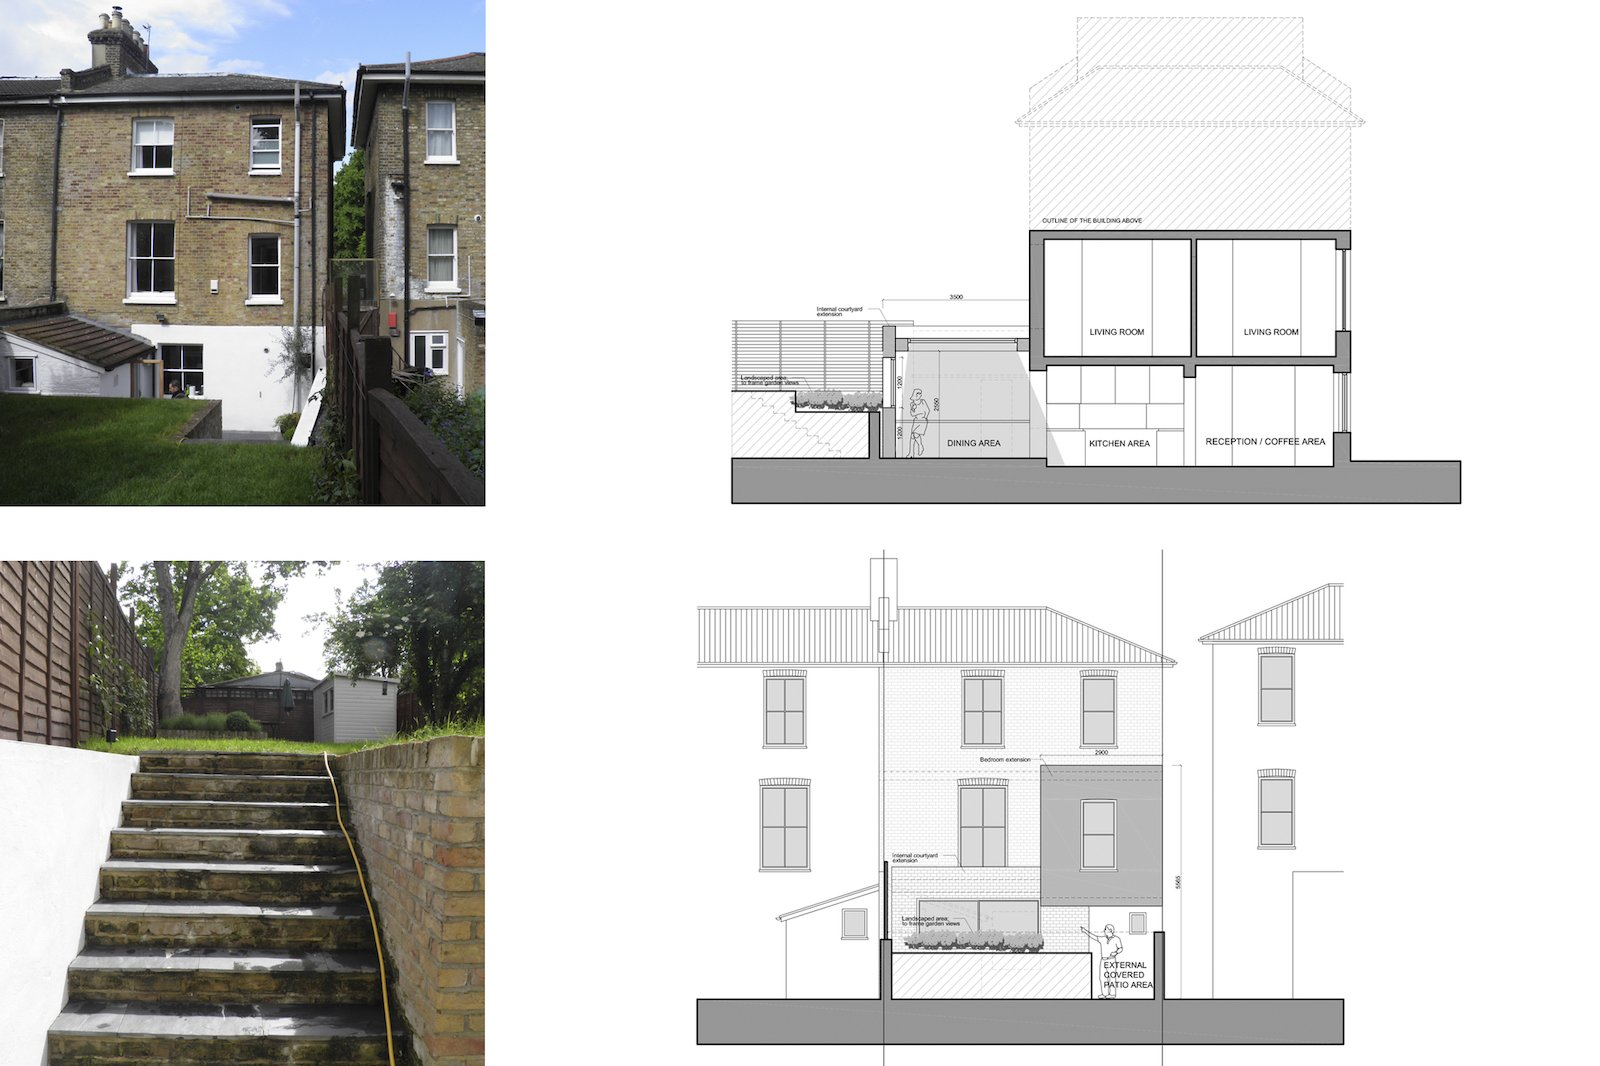 Architect designed two storey house extension Brockley Lewisham SE4 – Design sections and elevations Brockley, Lewisham SE4 | Two storey house extension